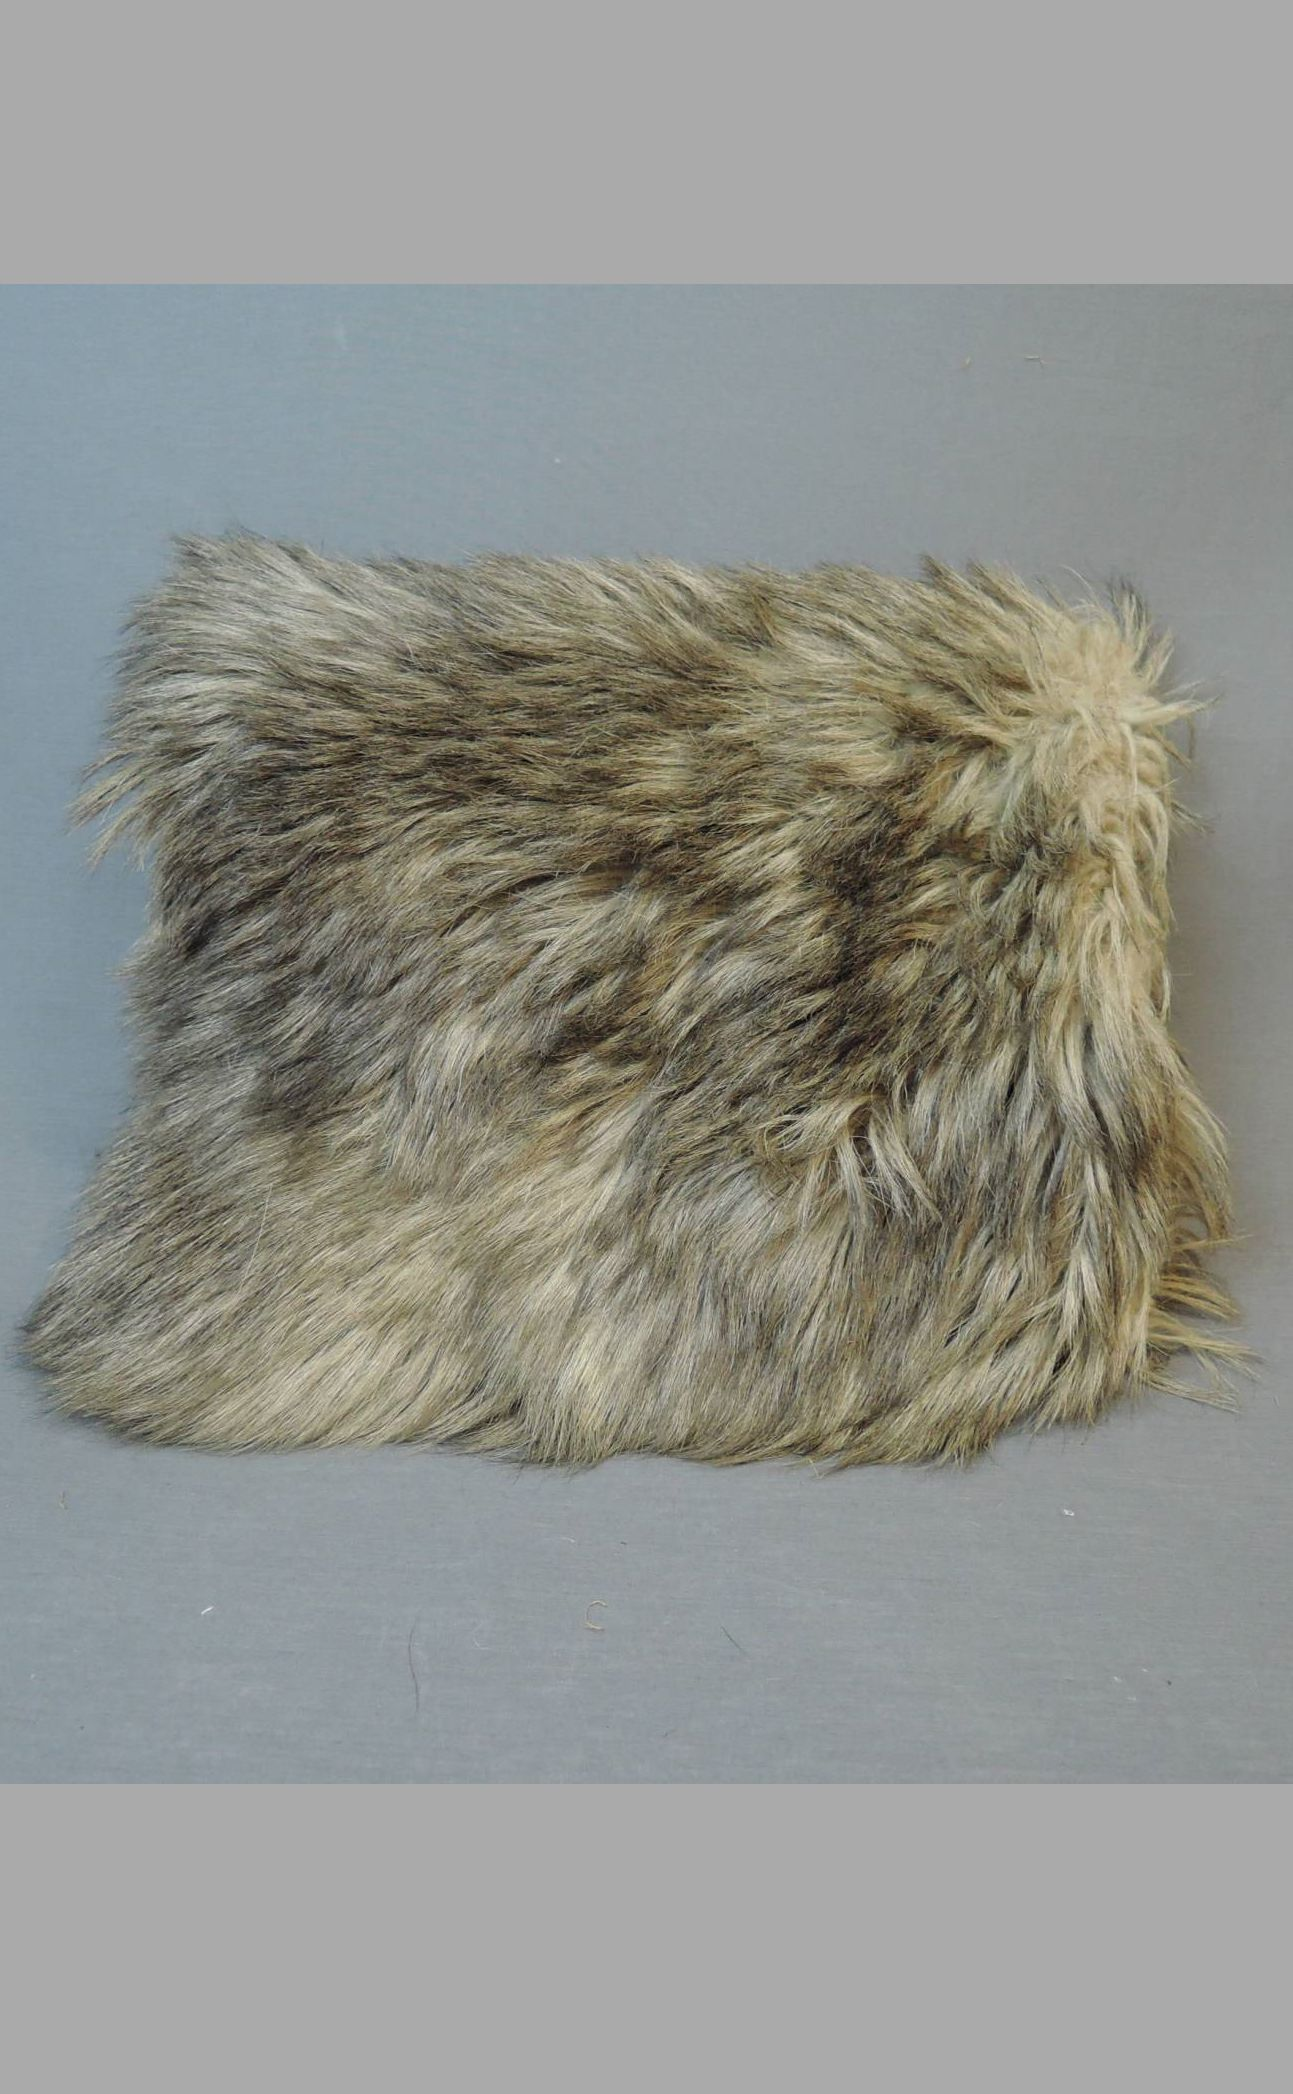 Antique Edwardian Fur Muff, 1900s 15x13 inches, Some issues